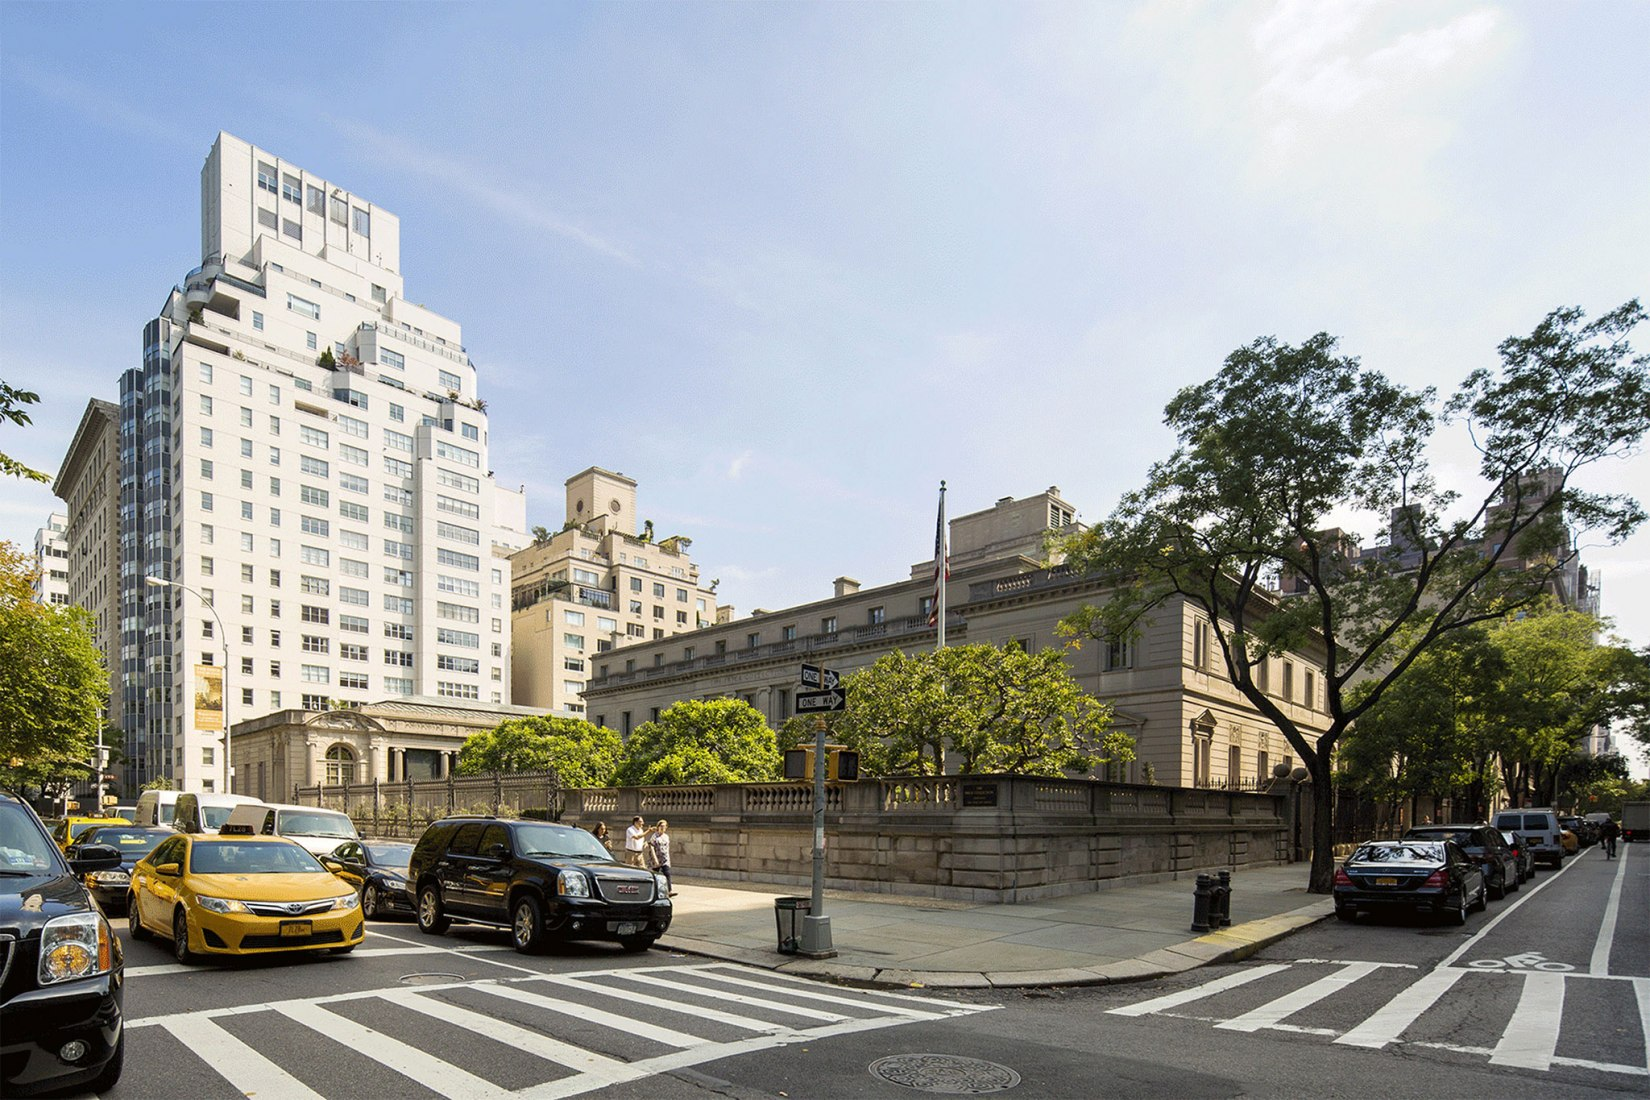 Vista actual de la Frick Collection de la 5ª Avenida y la 70ª Calle. Cortesía de Selldorf Architects